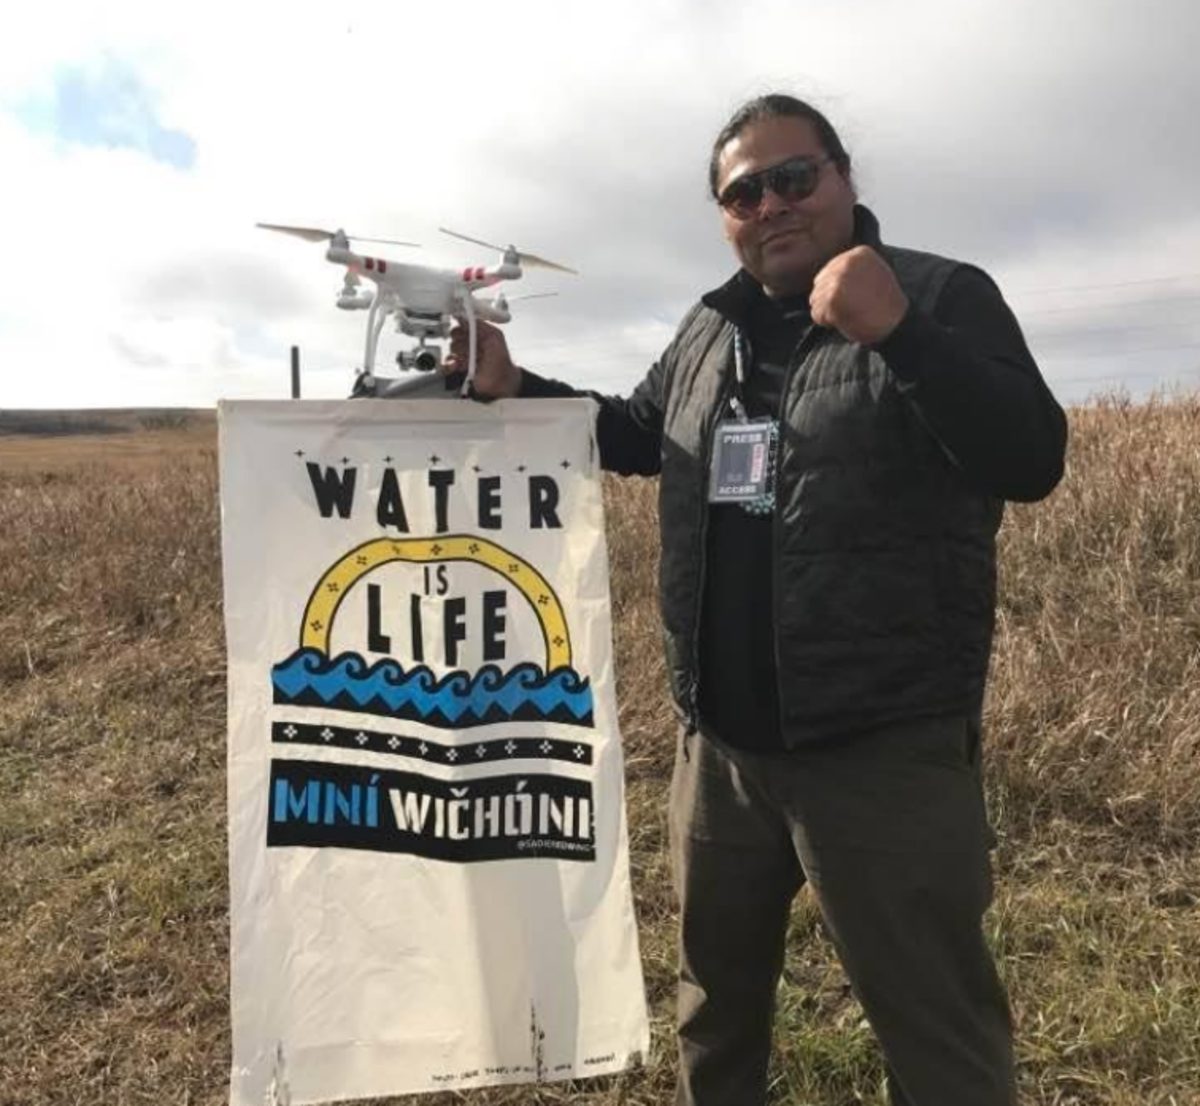 Myron Dewey received National recognition for his Standing Rock drone footage - Facebook